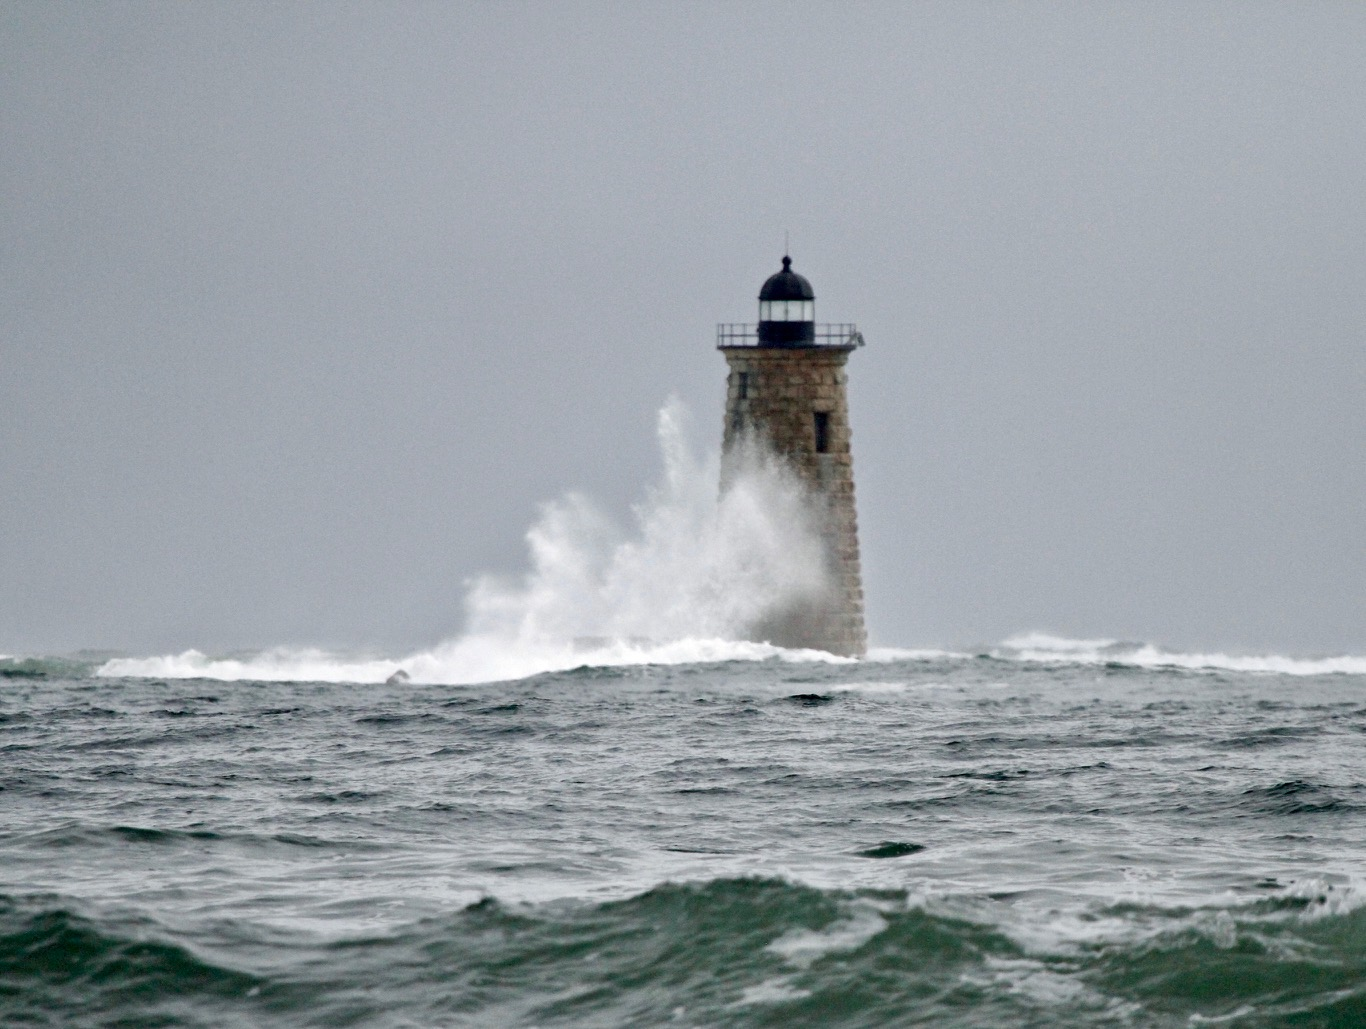 a wave breaks on the edge of a lighthouse